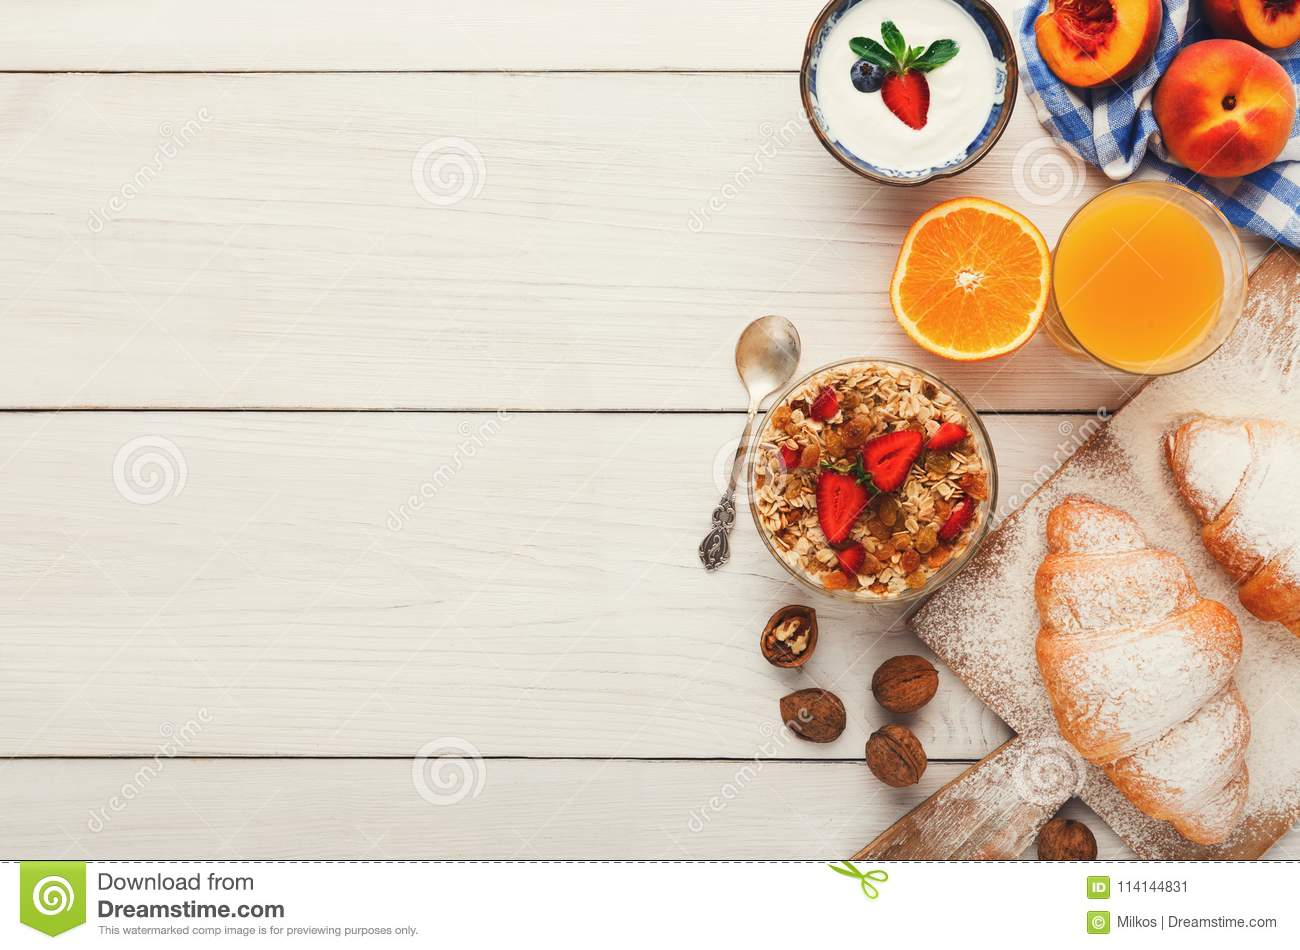 continental breakfast menu on woden table stock image - image of